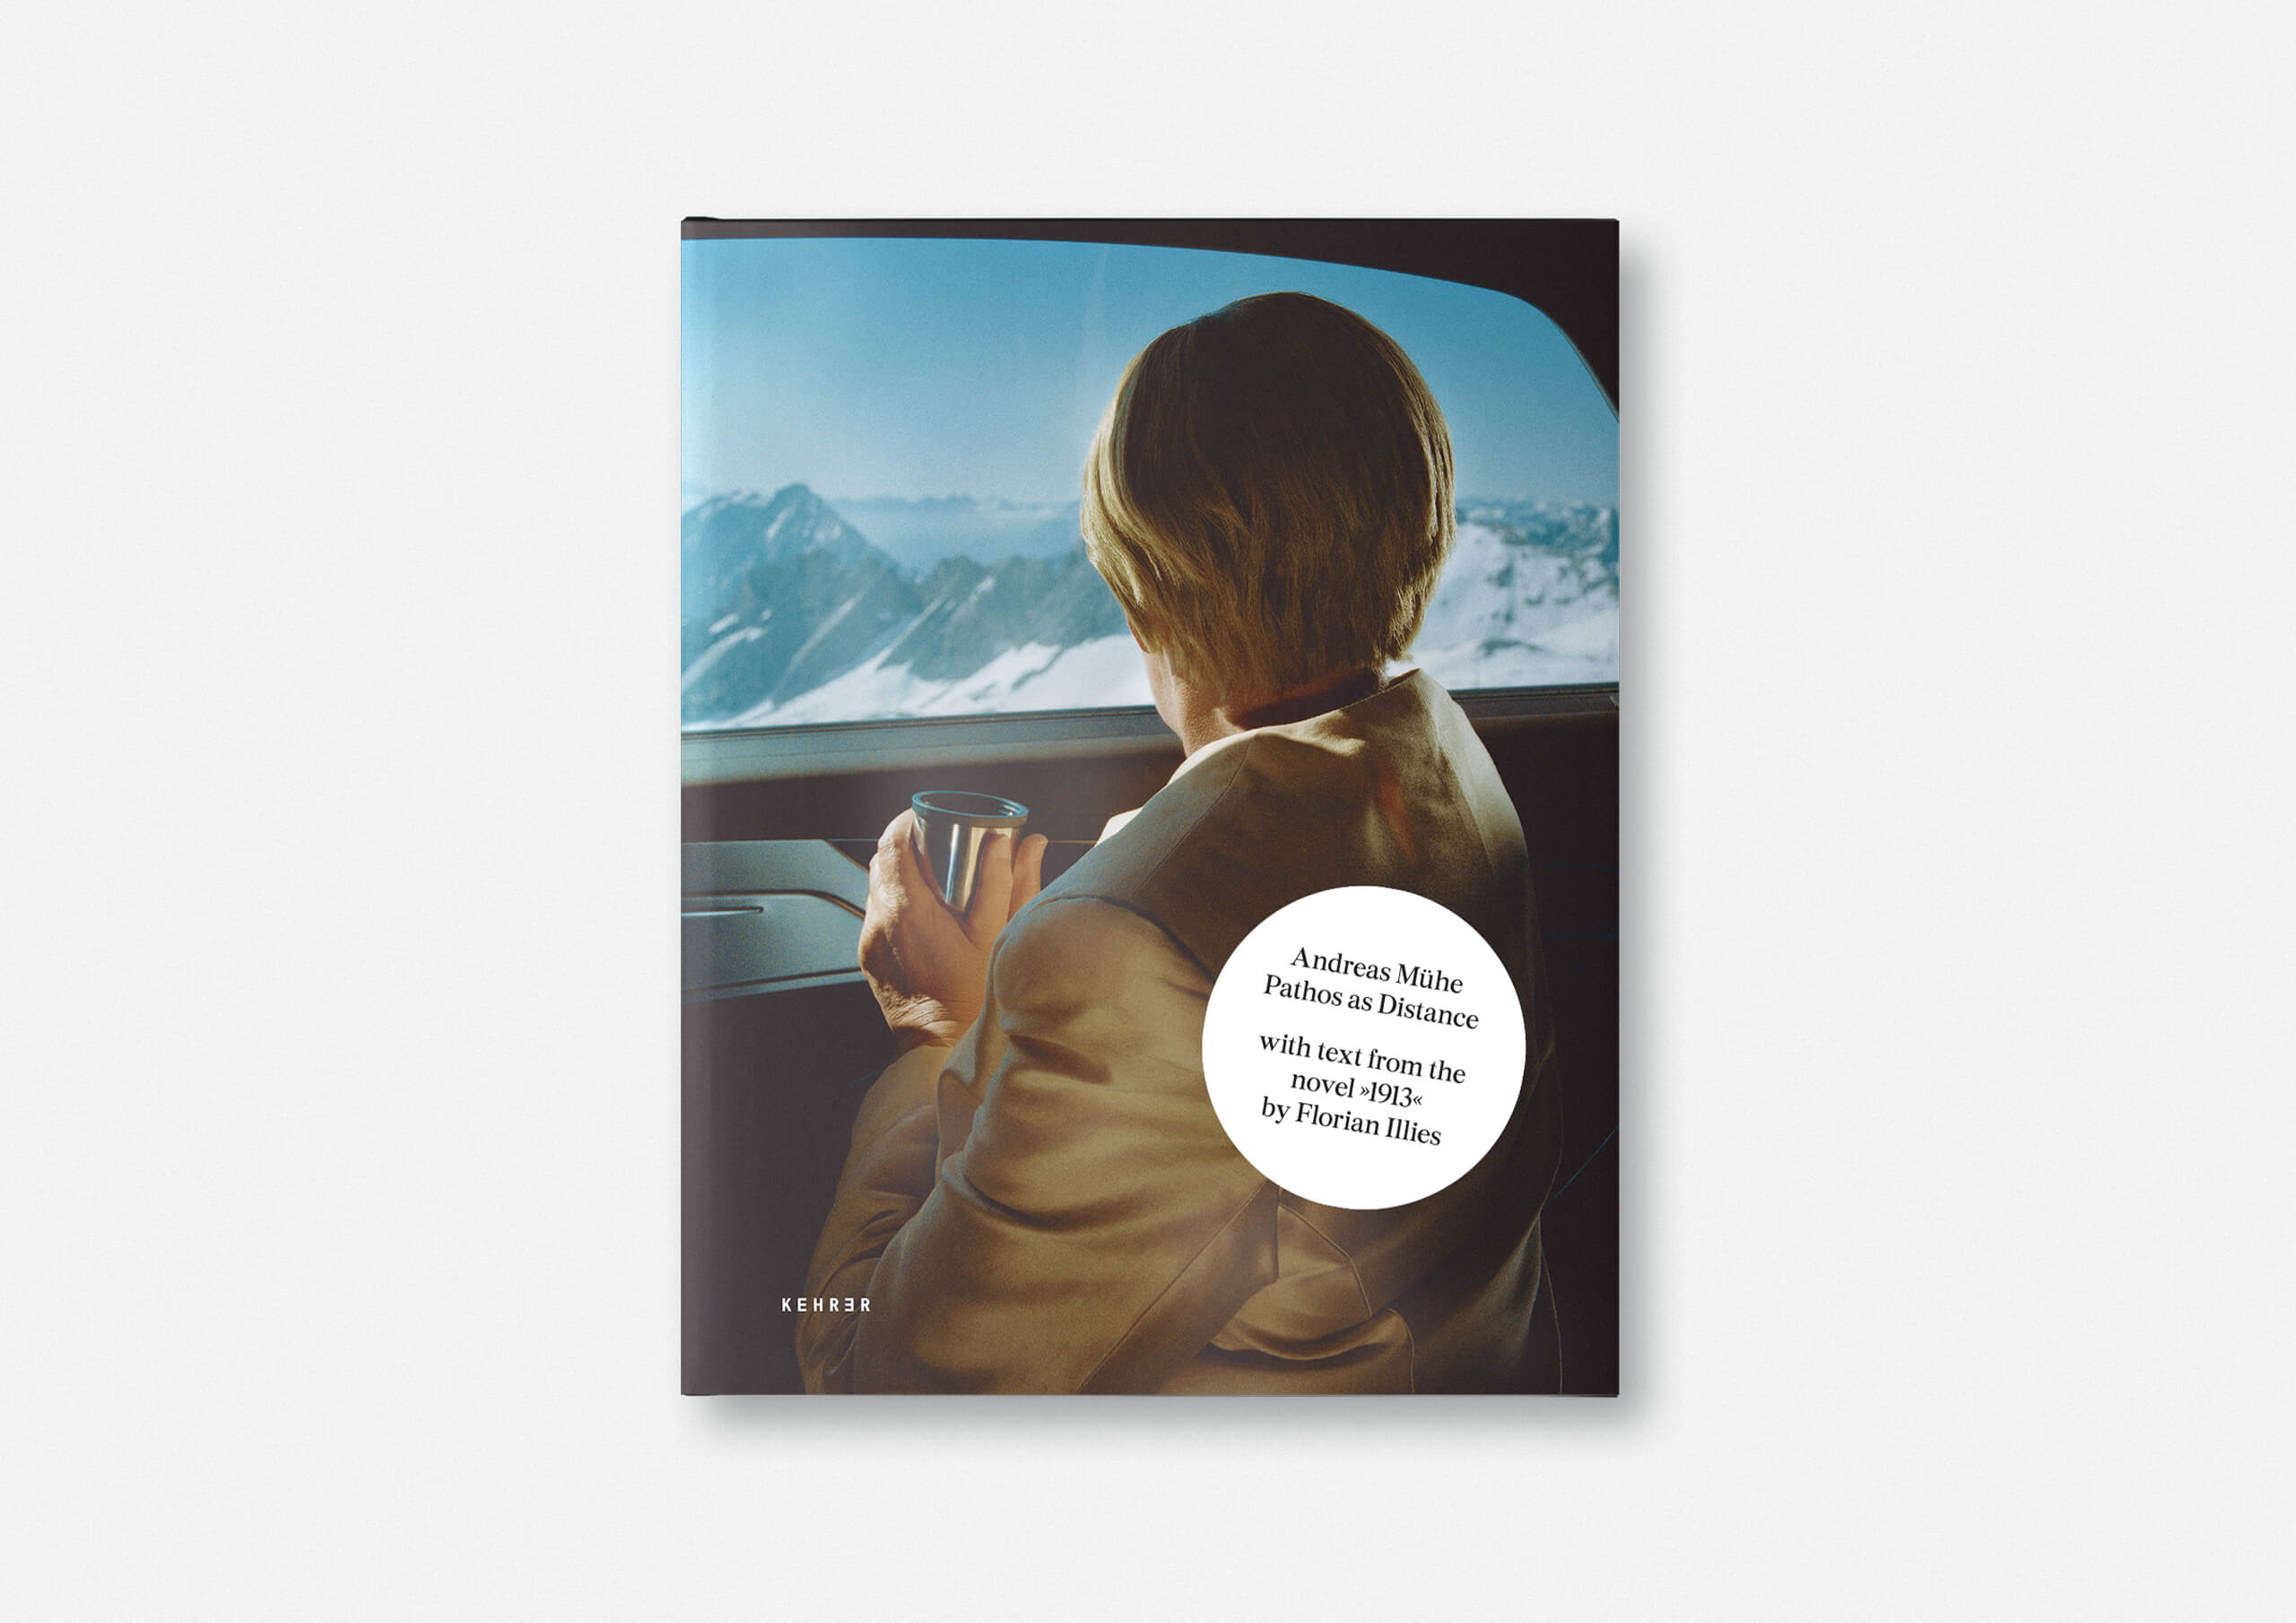 http://neuegestaltung.de/media/pages/clients/andreas-muhe-pathos-als-distanz/2eee2dfef7-1597415202/am_dth_ng-web_cover_front_umschlag.jpg